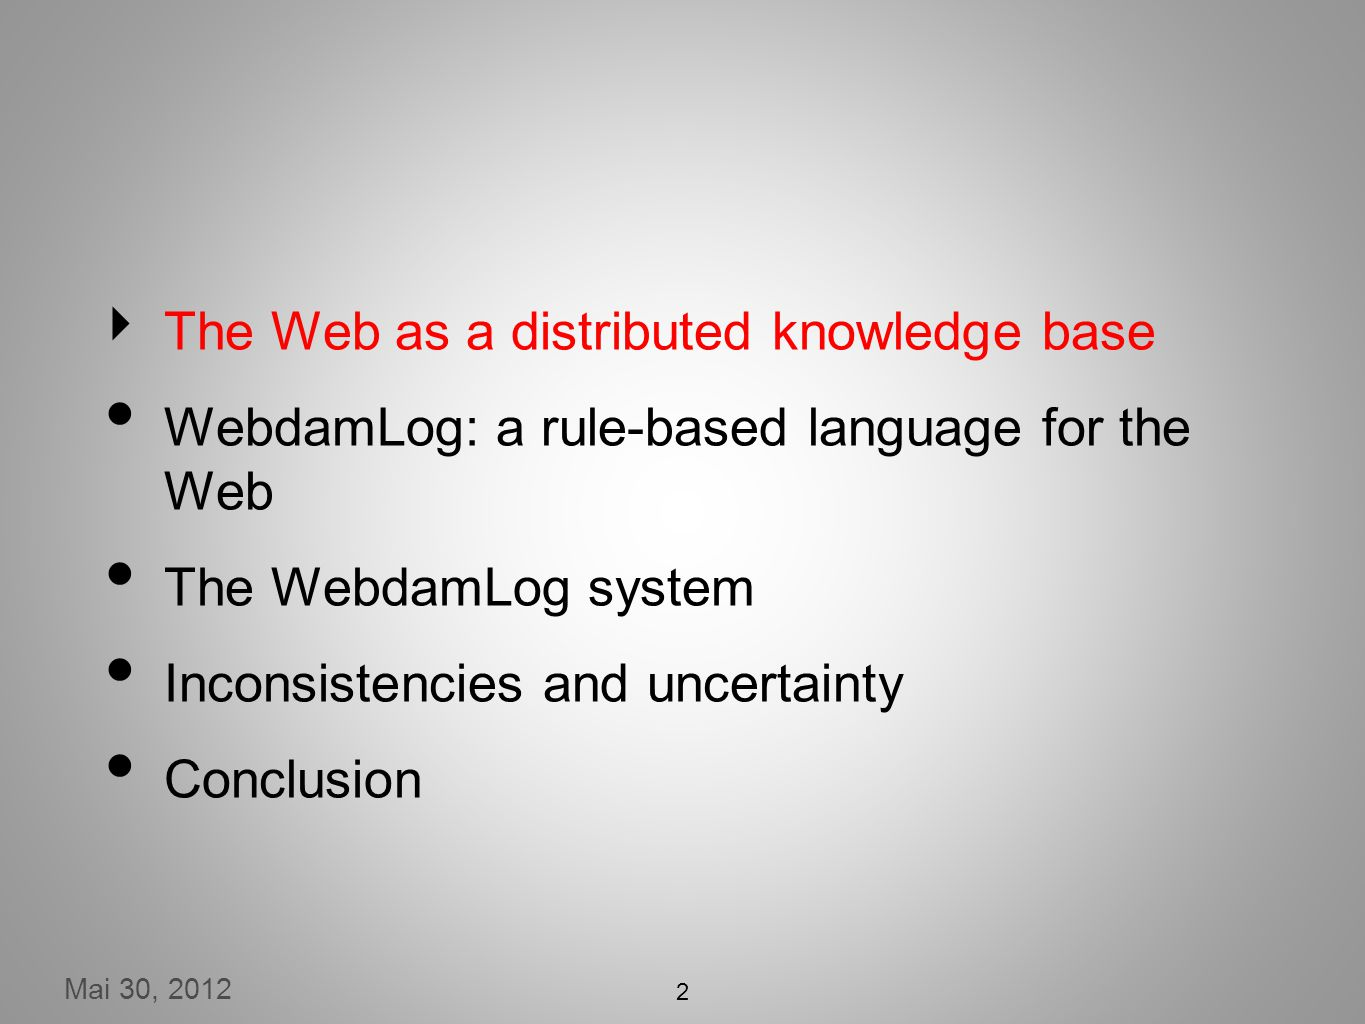 2 The Web as a distributed knowledge base WebdamLog: a rule-based language for the Web The WebdamLog system Inconsistencies and uncertainty Conclusion